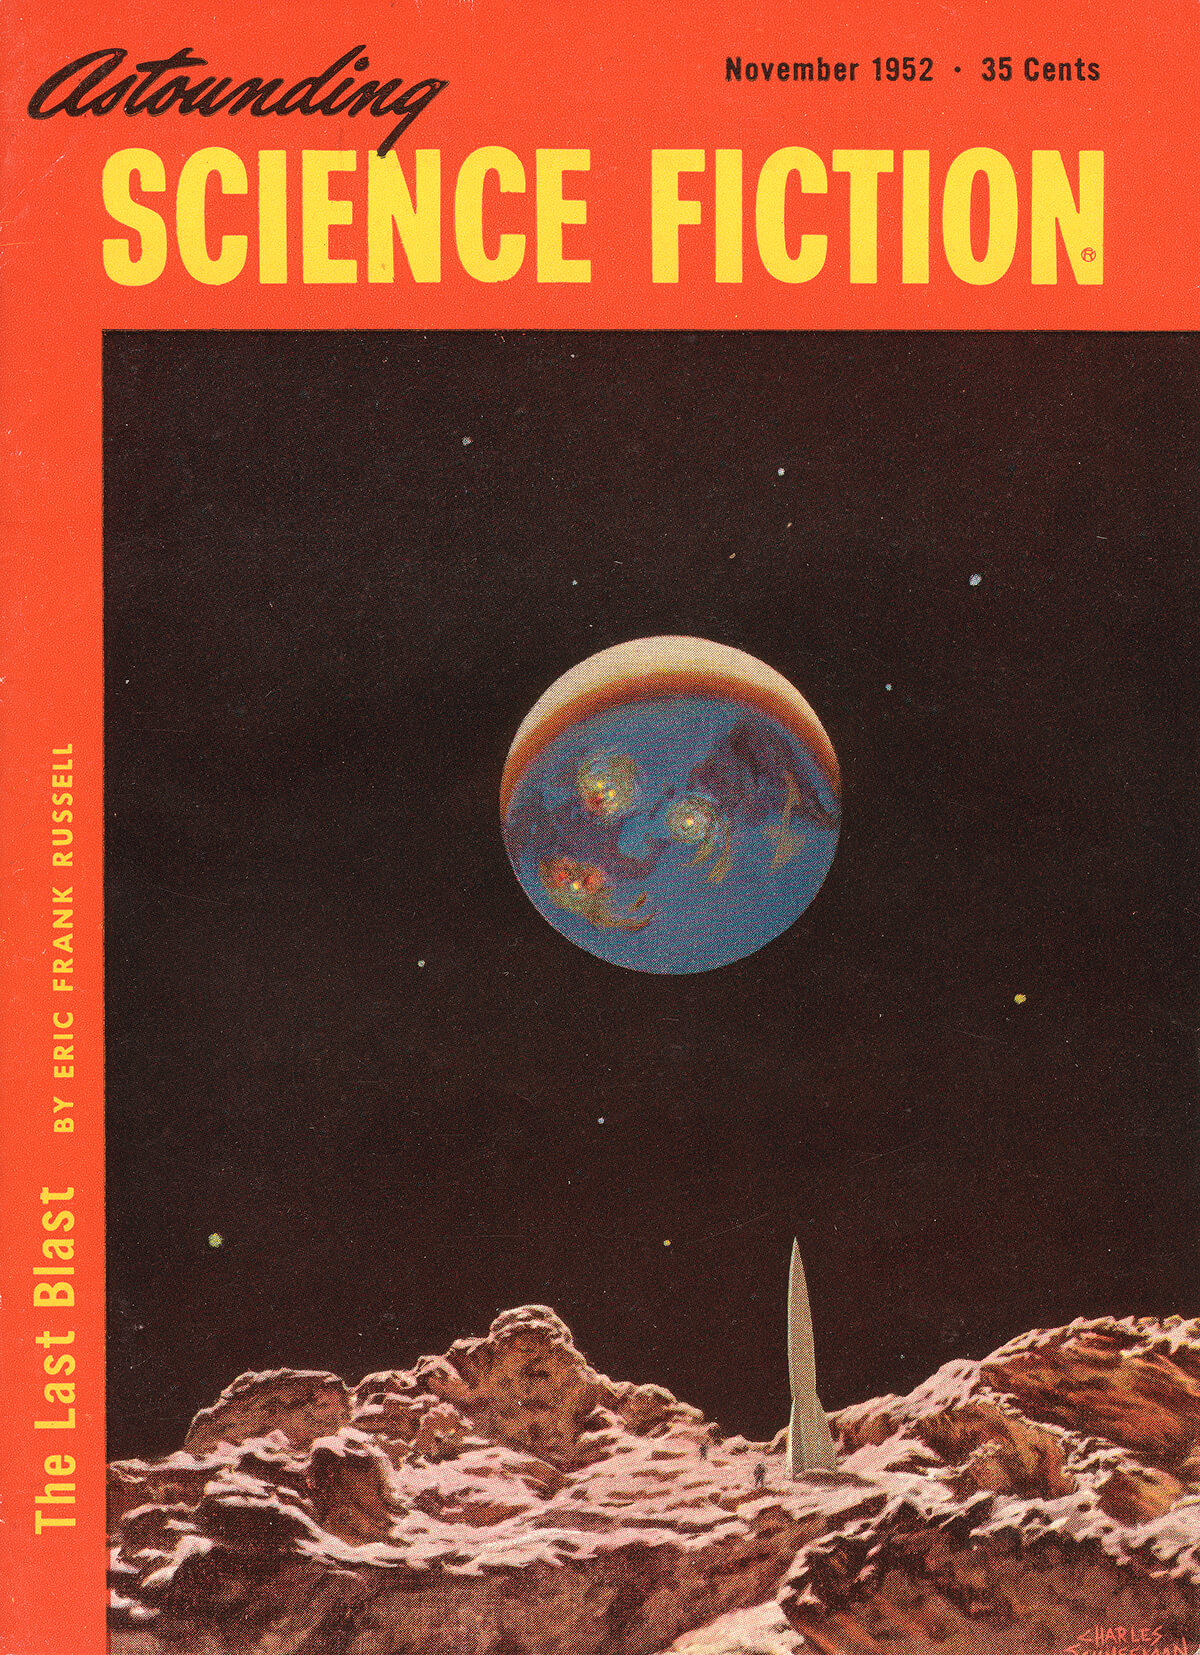 Astounding Science Fiction Nov 1952